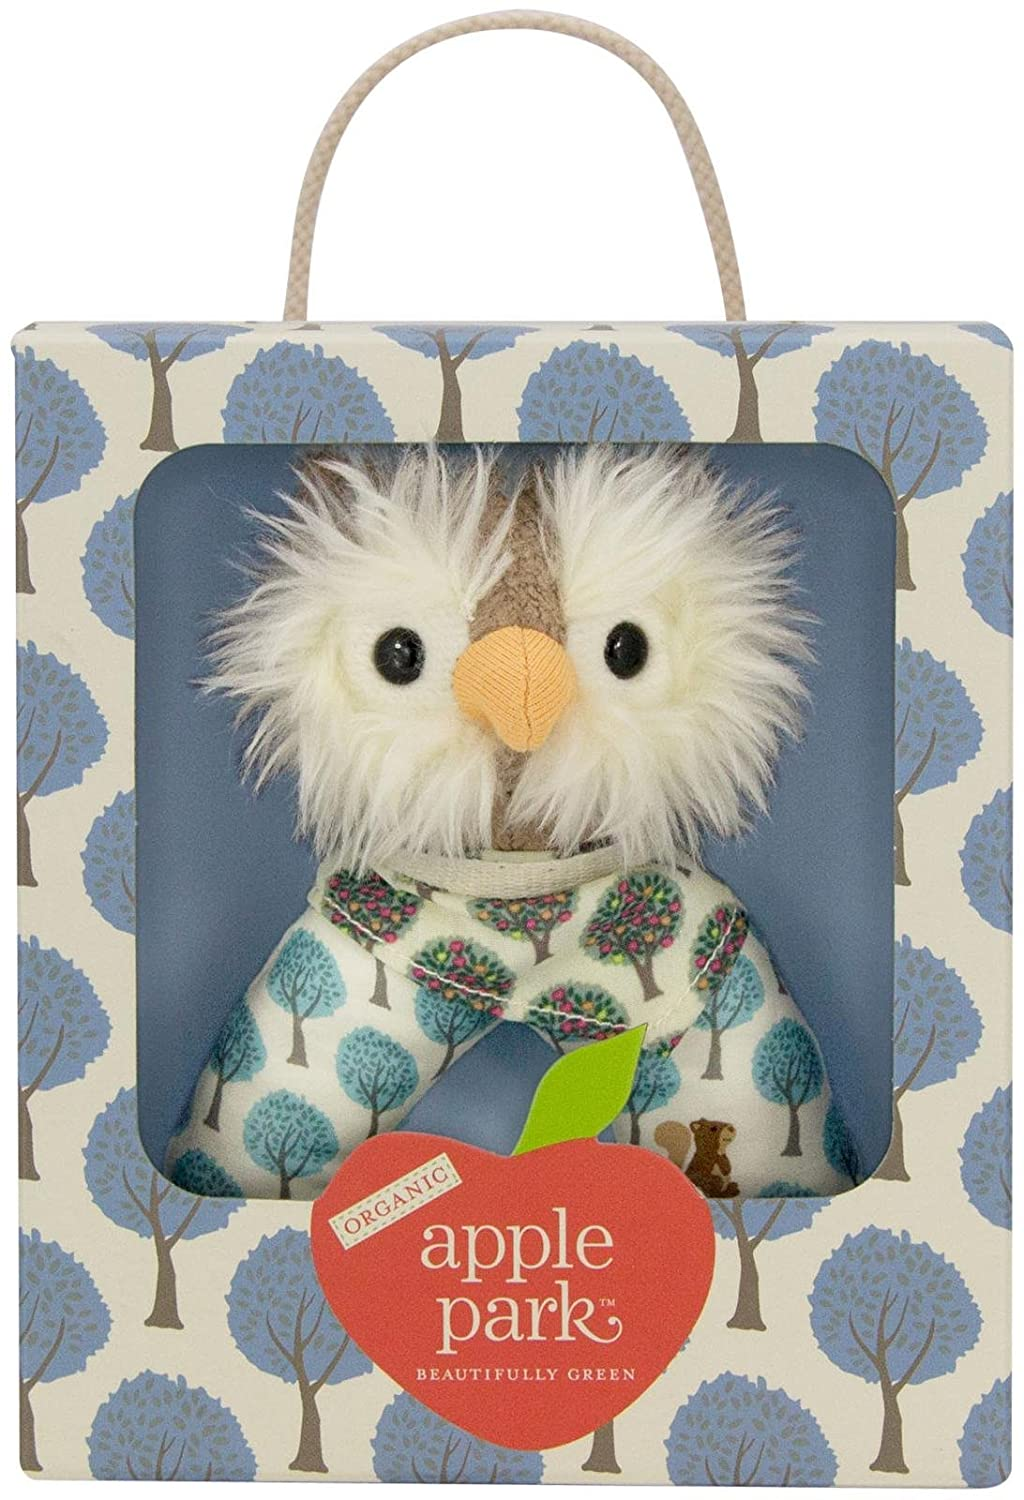 Apple Park Organic Patterned Rattle ブラウン TM389  フクロウ B00MY5H48A